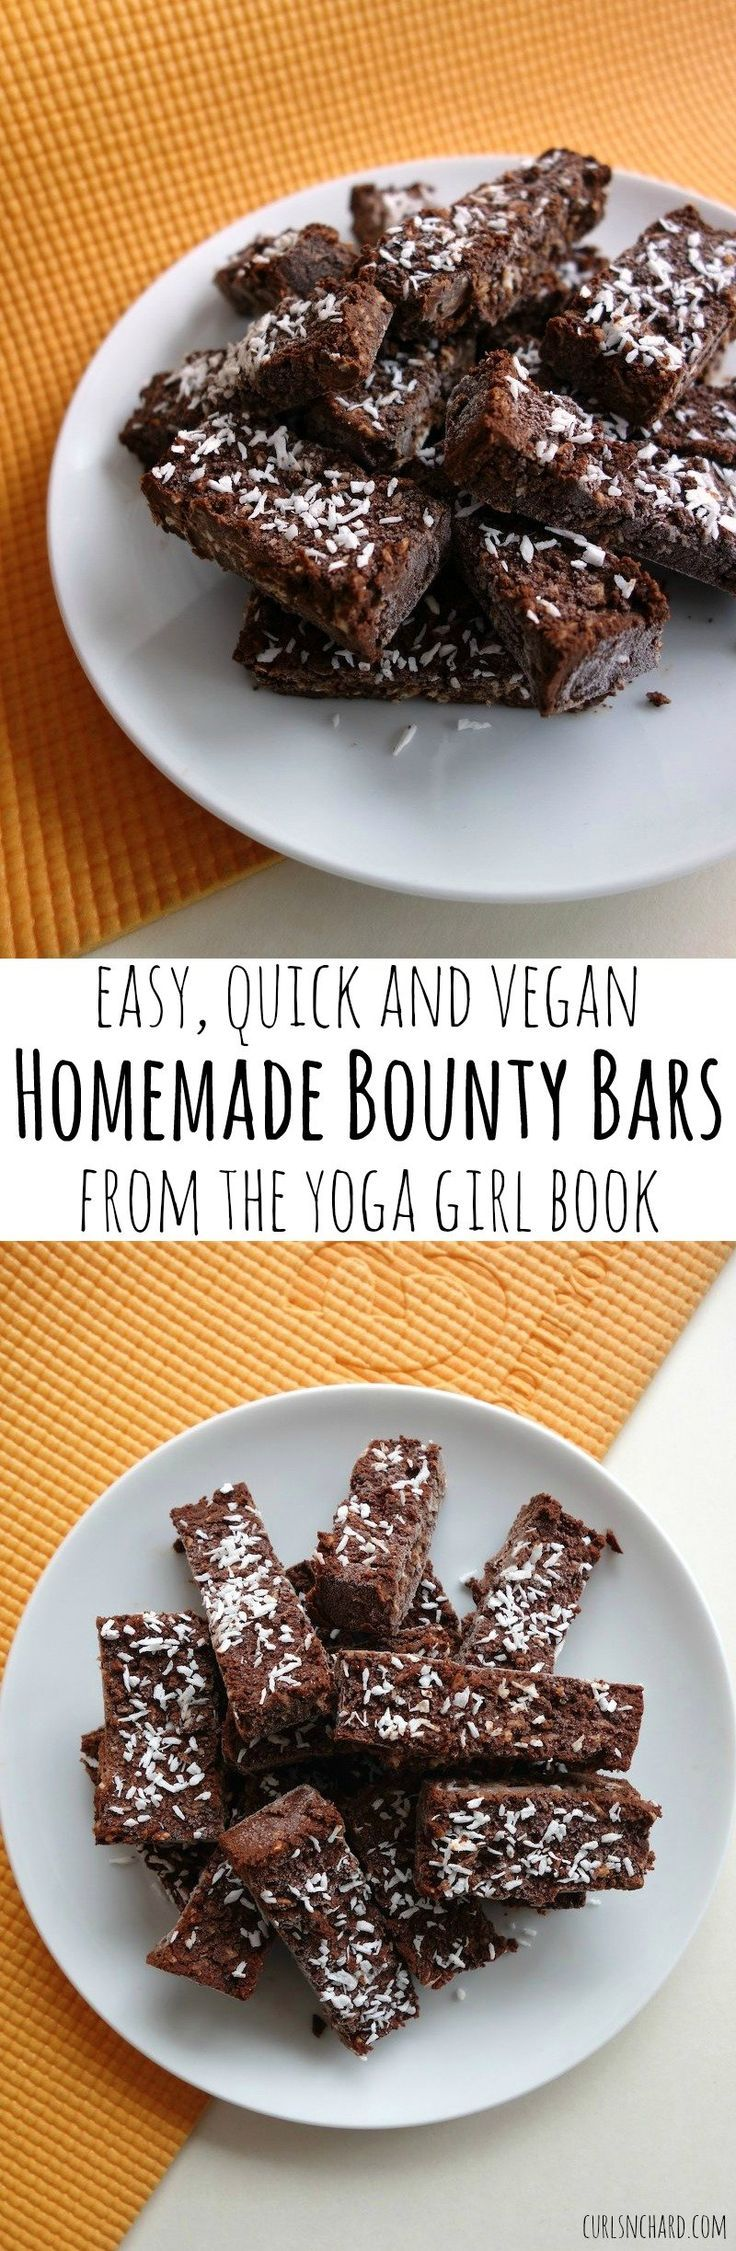 Homemade Bounty Bars from Yoga Girl Rachel Brathen (vegan, gluten-free) | curlsnchard.com